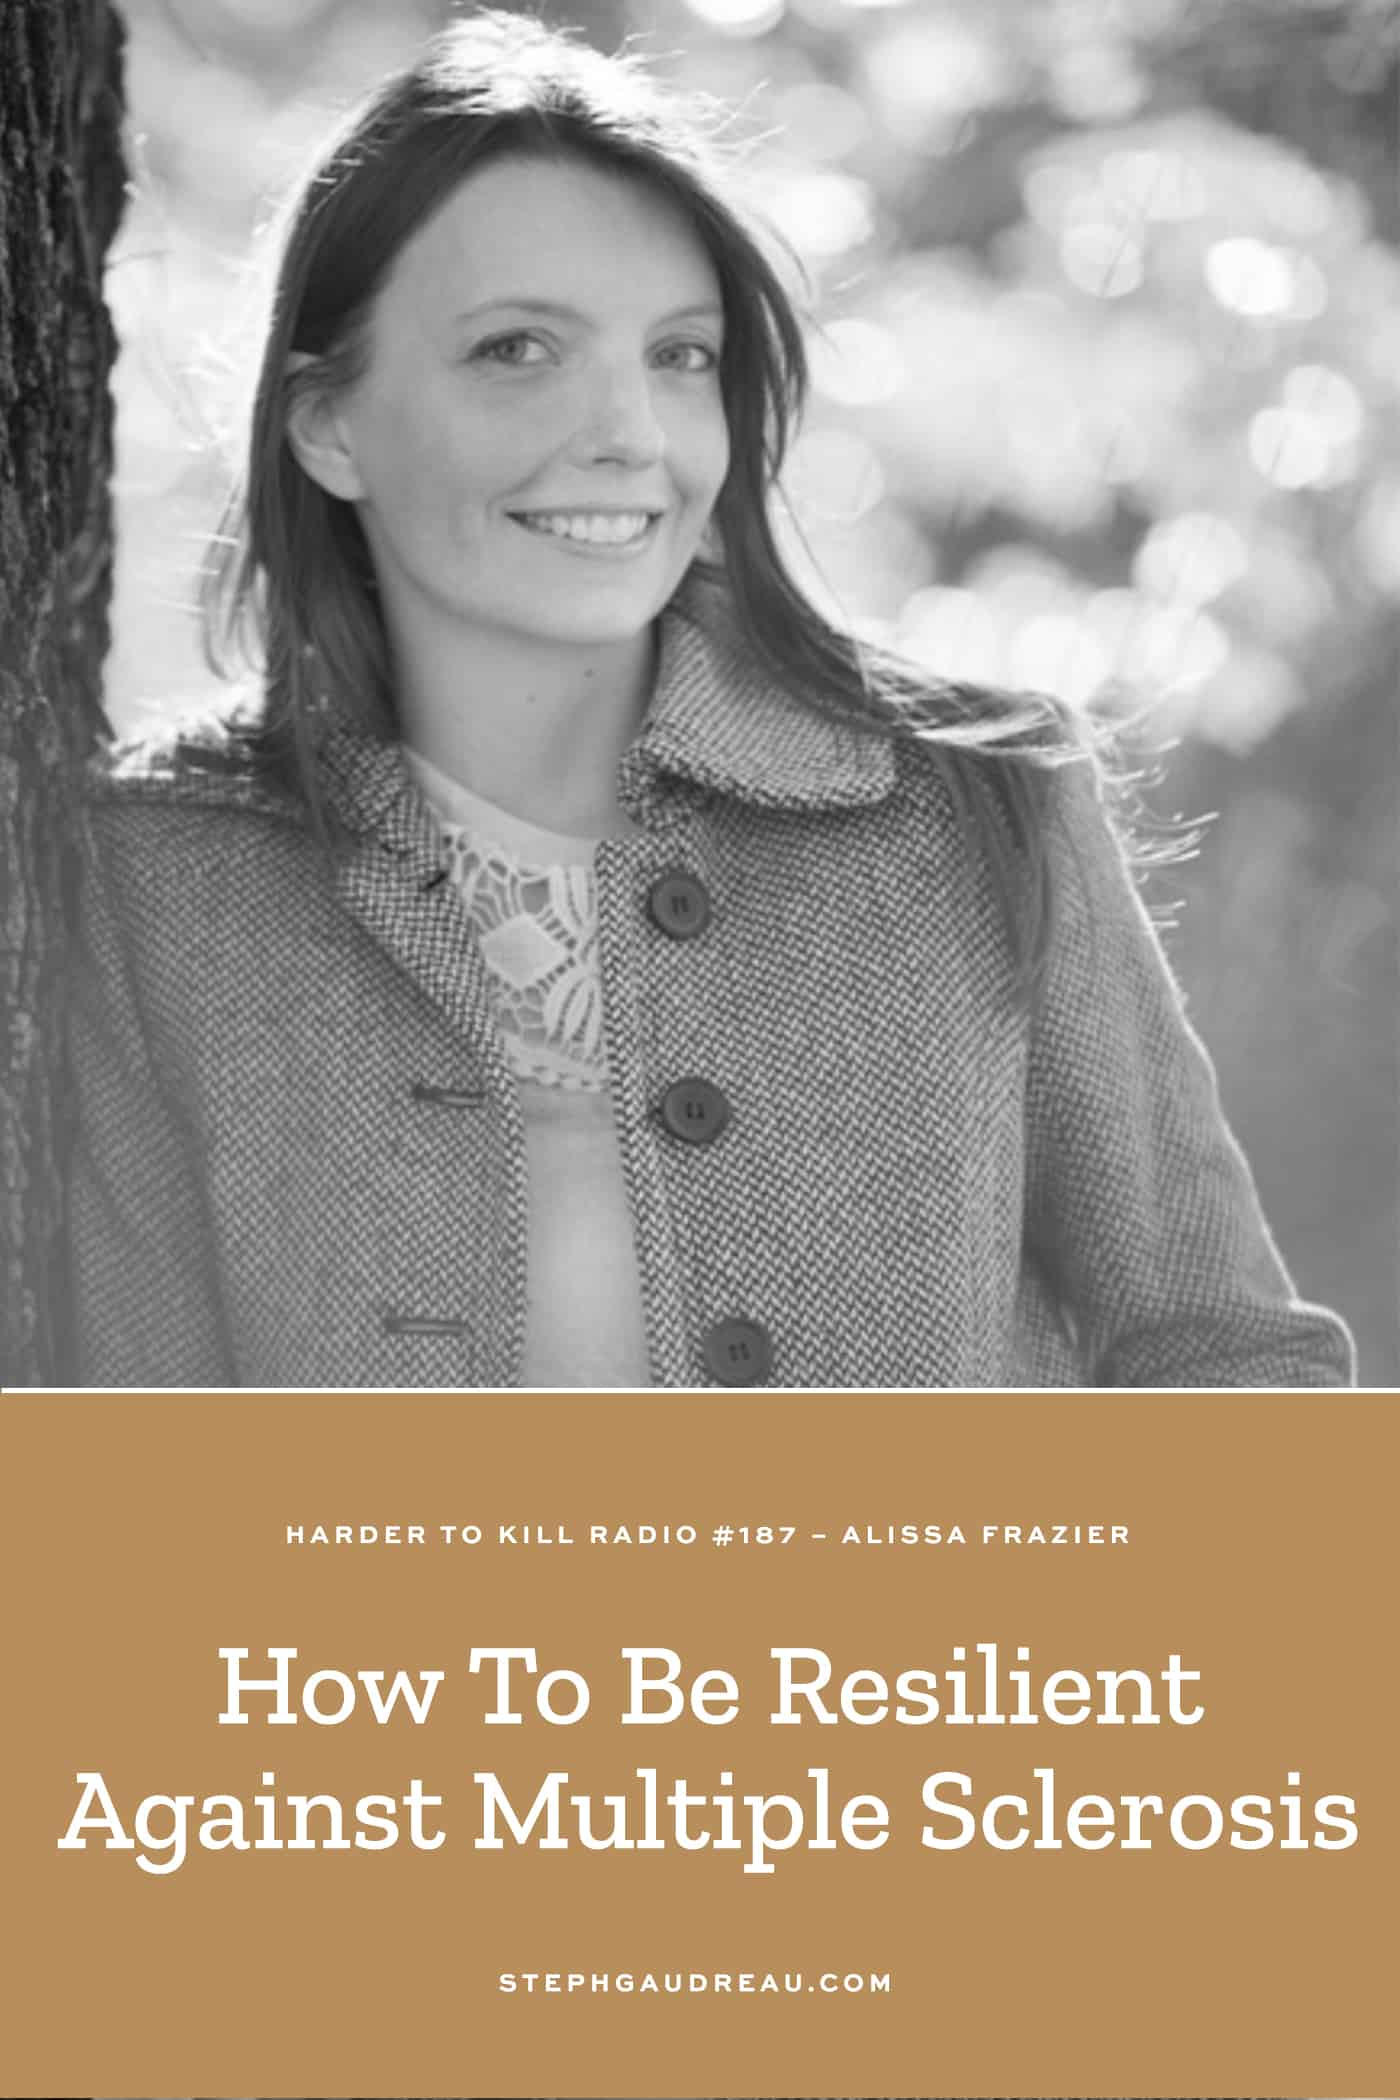 Harder To Kill Radio 187 How To Be Resilient Against Multiple Sclerosis w/ Alissa Frazier